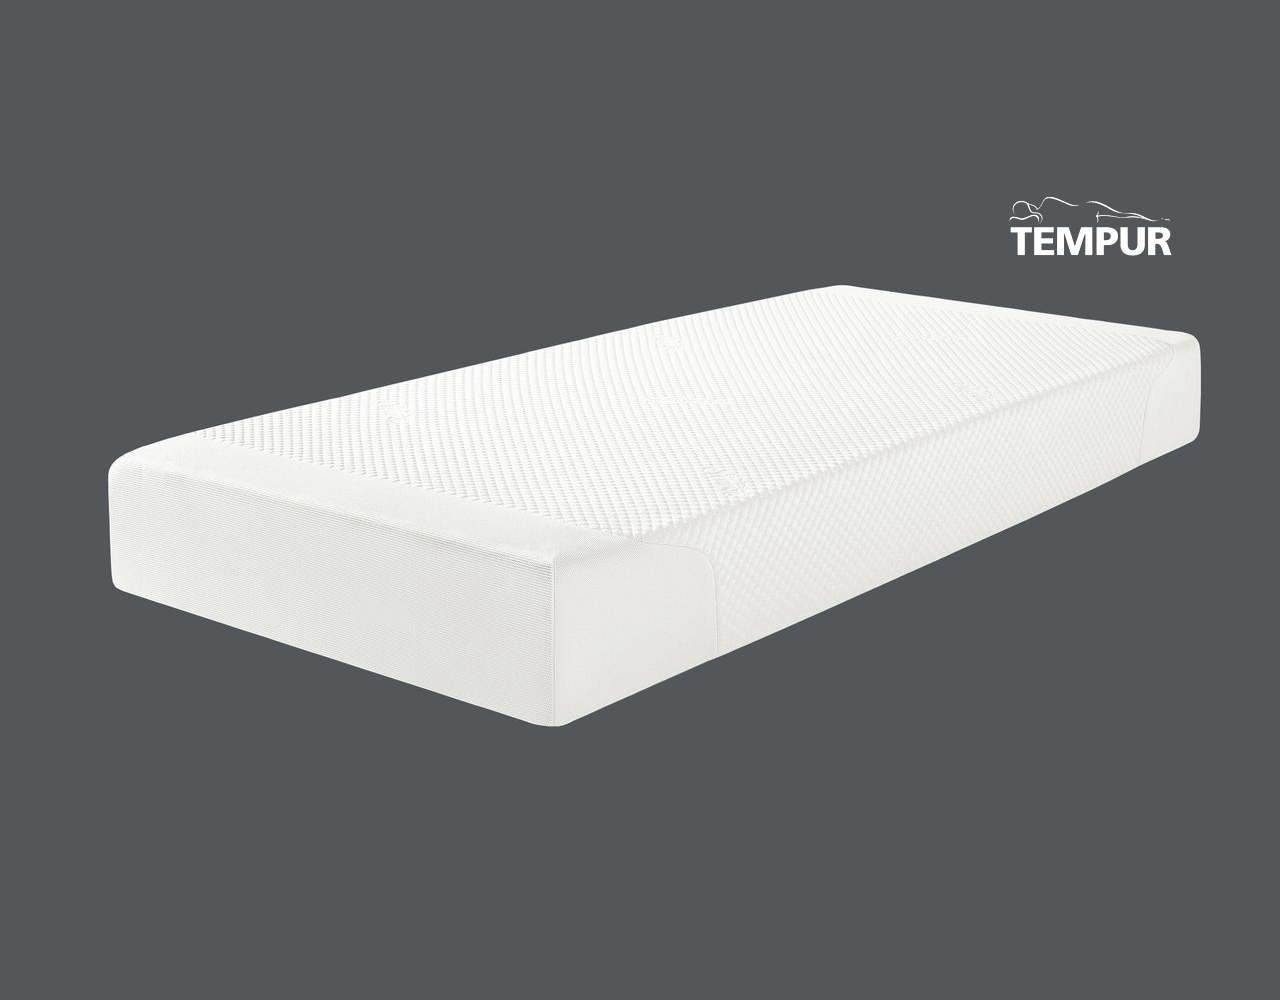 Materasso in tempur cloud 21 doronico - Matelas tempur cloud 21 ...